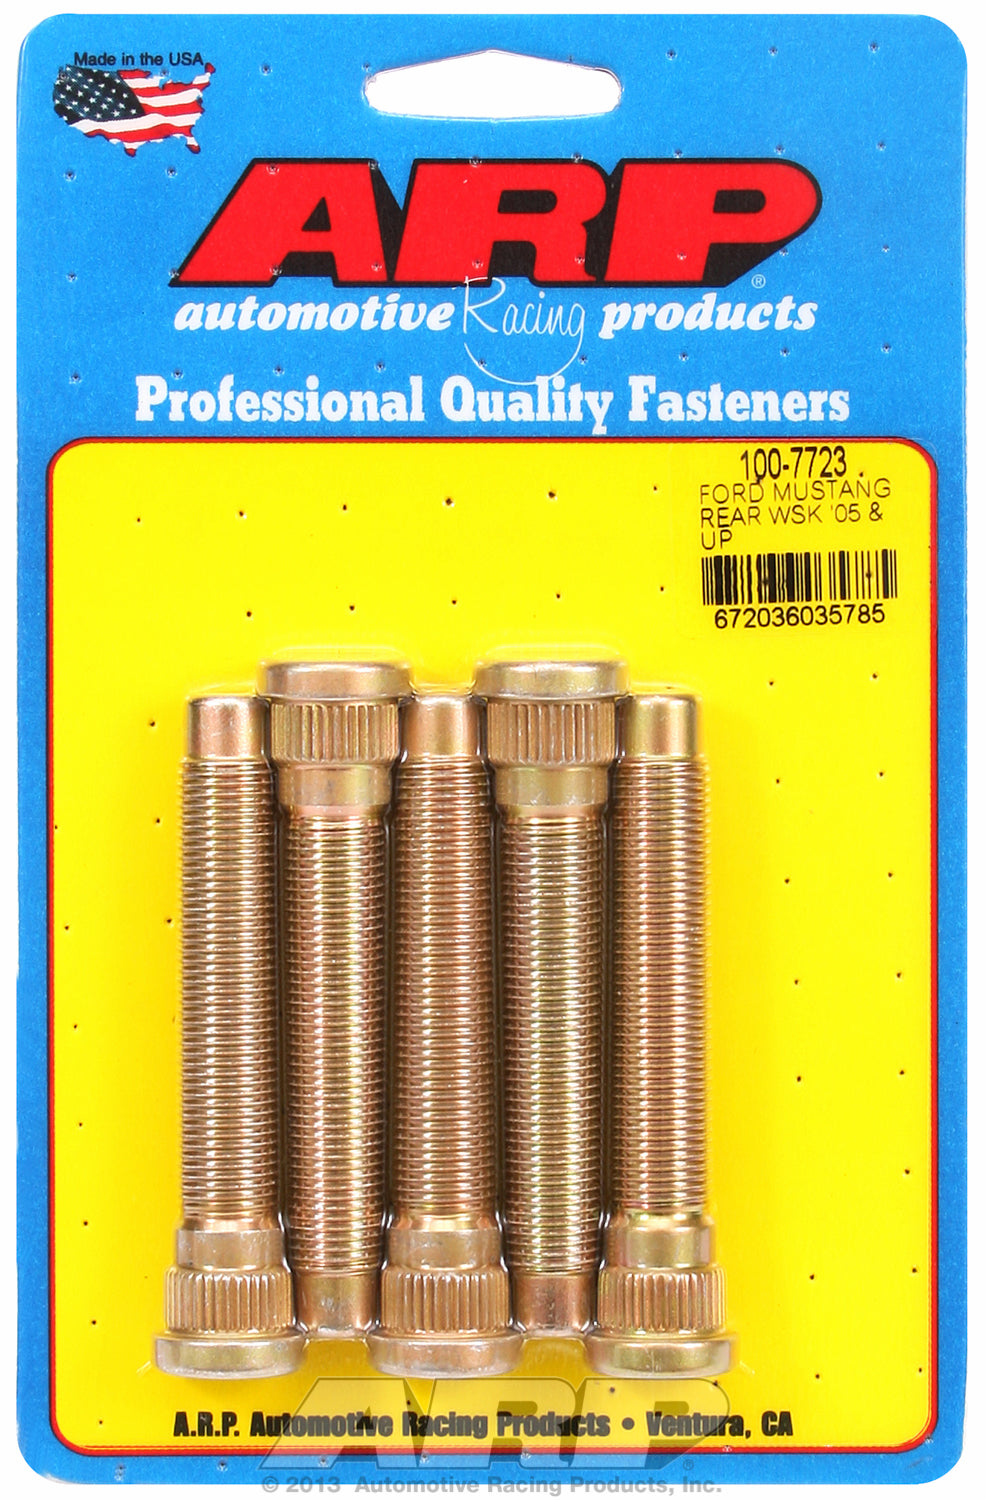 Wheel Stud Kit for Mustang (2005 & later) rear & most late model Fords w/ front & rear disc brakes